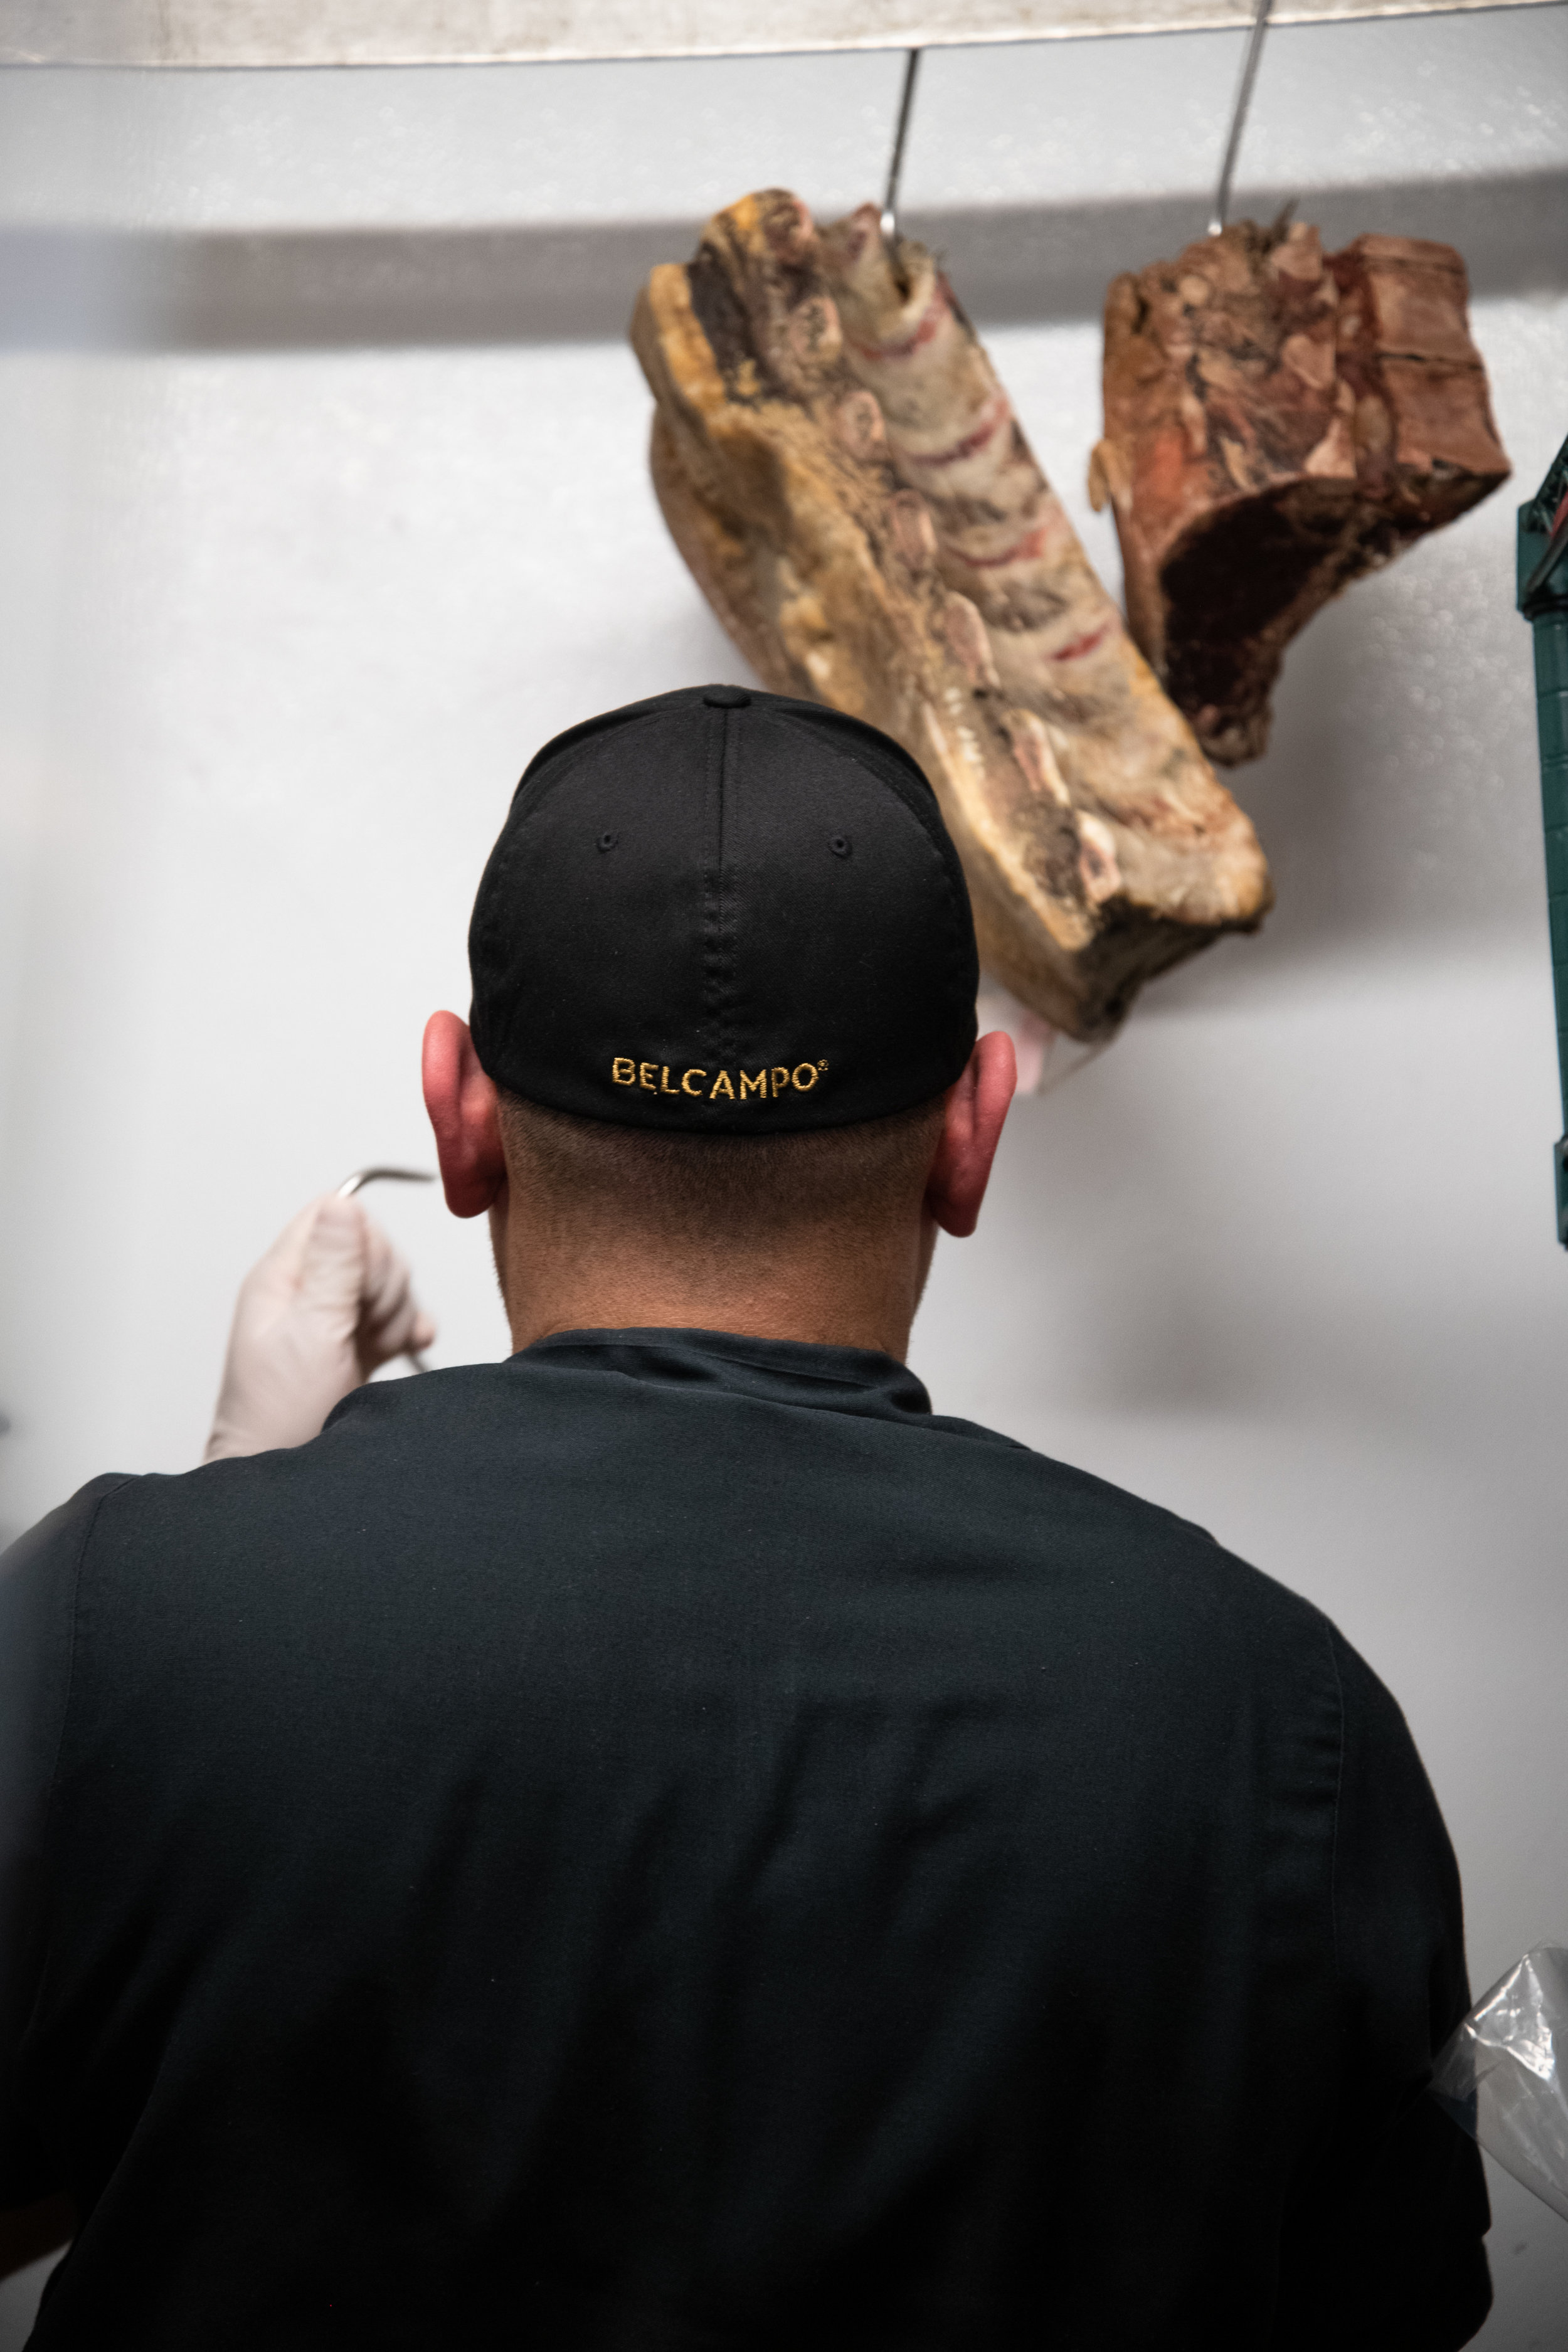 Meats are dry aged inside of the freezer at Belcampo Meat Company, Thursday, March 21, 2019, on Wilshire Blvd. in Santa Monica, Calif. One of the Head Butchers, Miguel Ortiz, hangs a cut that is being aged for 100 days, from the Belcampo farm in northern California. (Nicole Haun/ The Corsair)